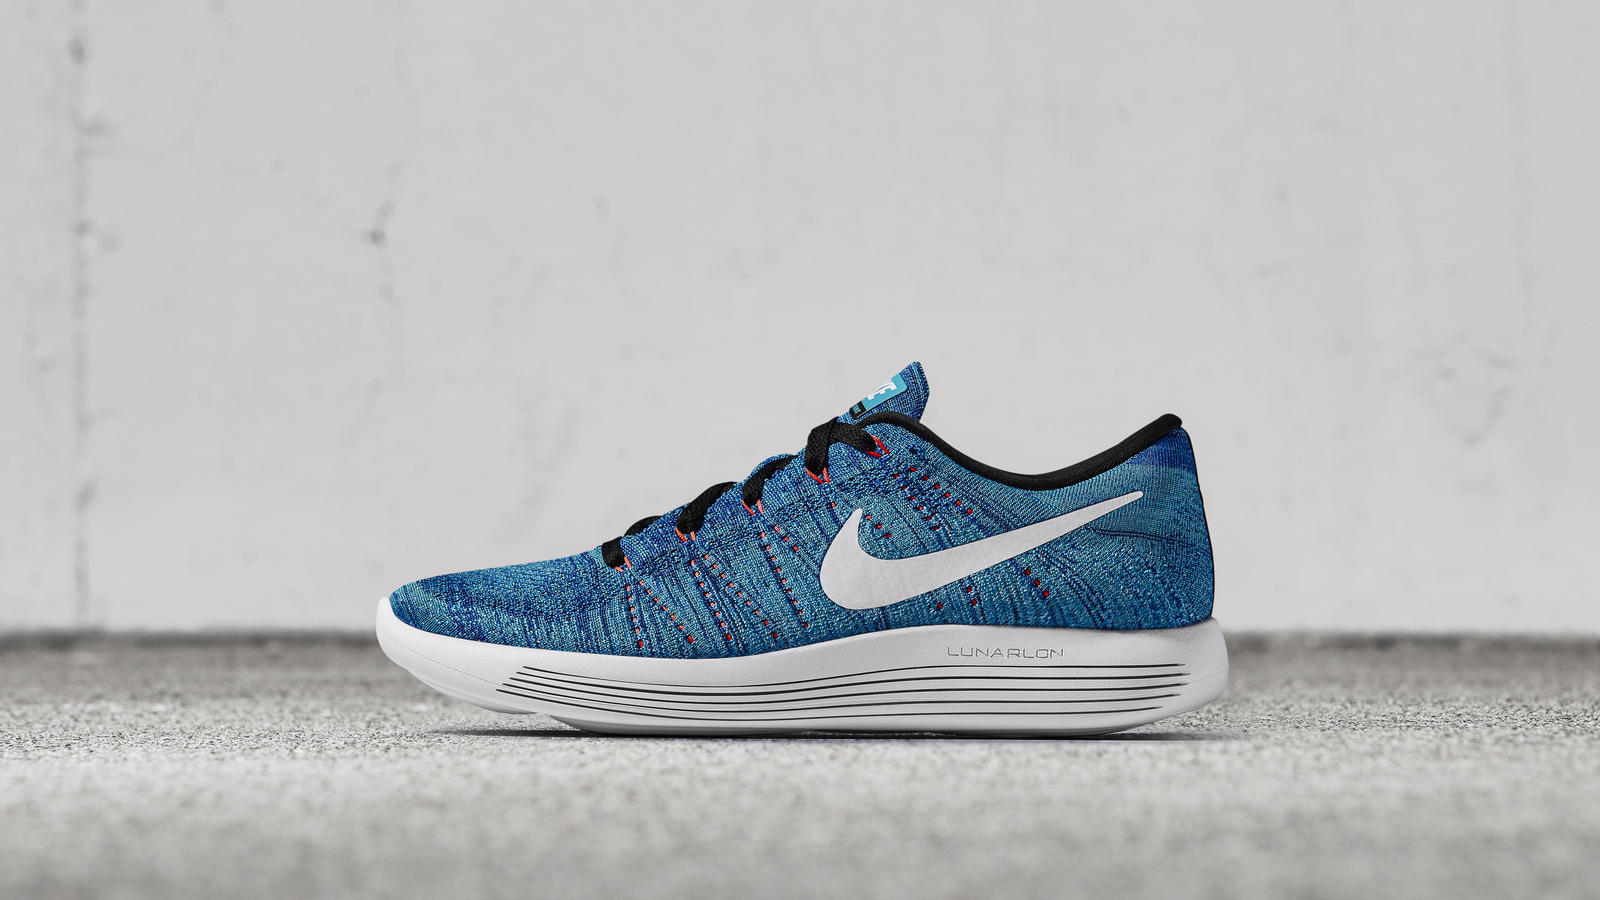 buy online 23c72 3459e Nike LunarEpic Low Flyknit - Nike News